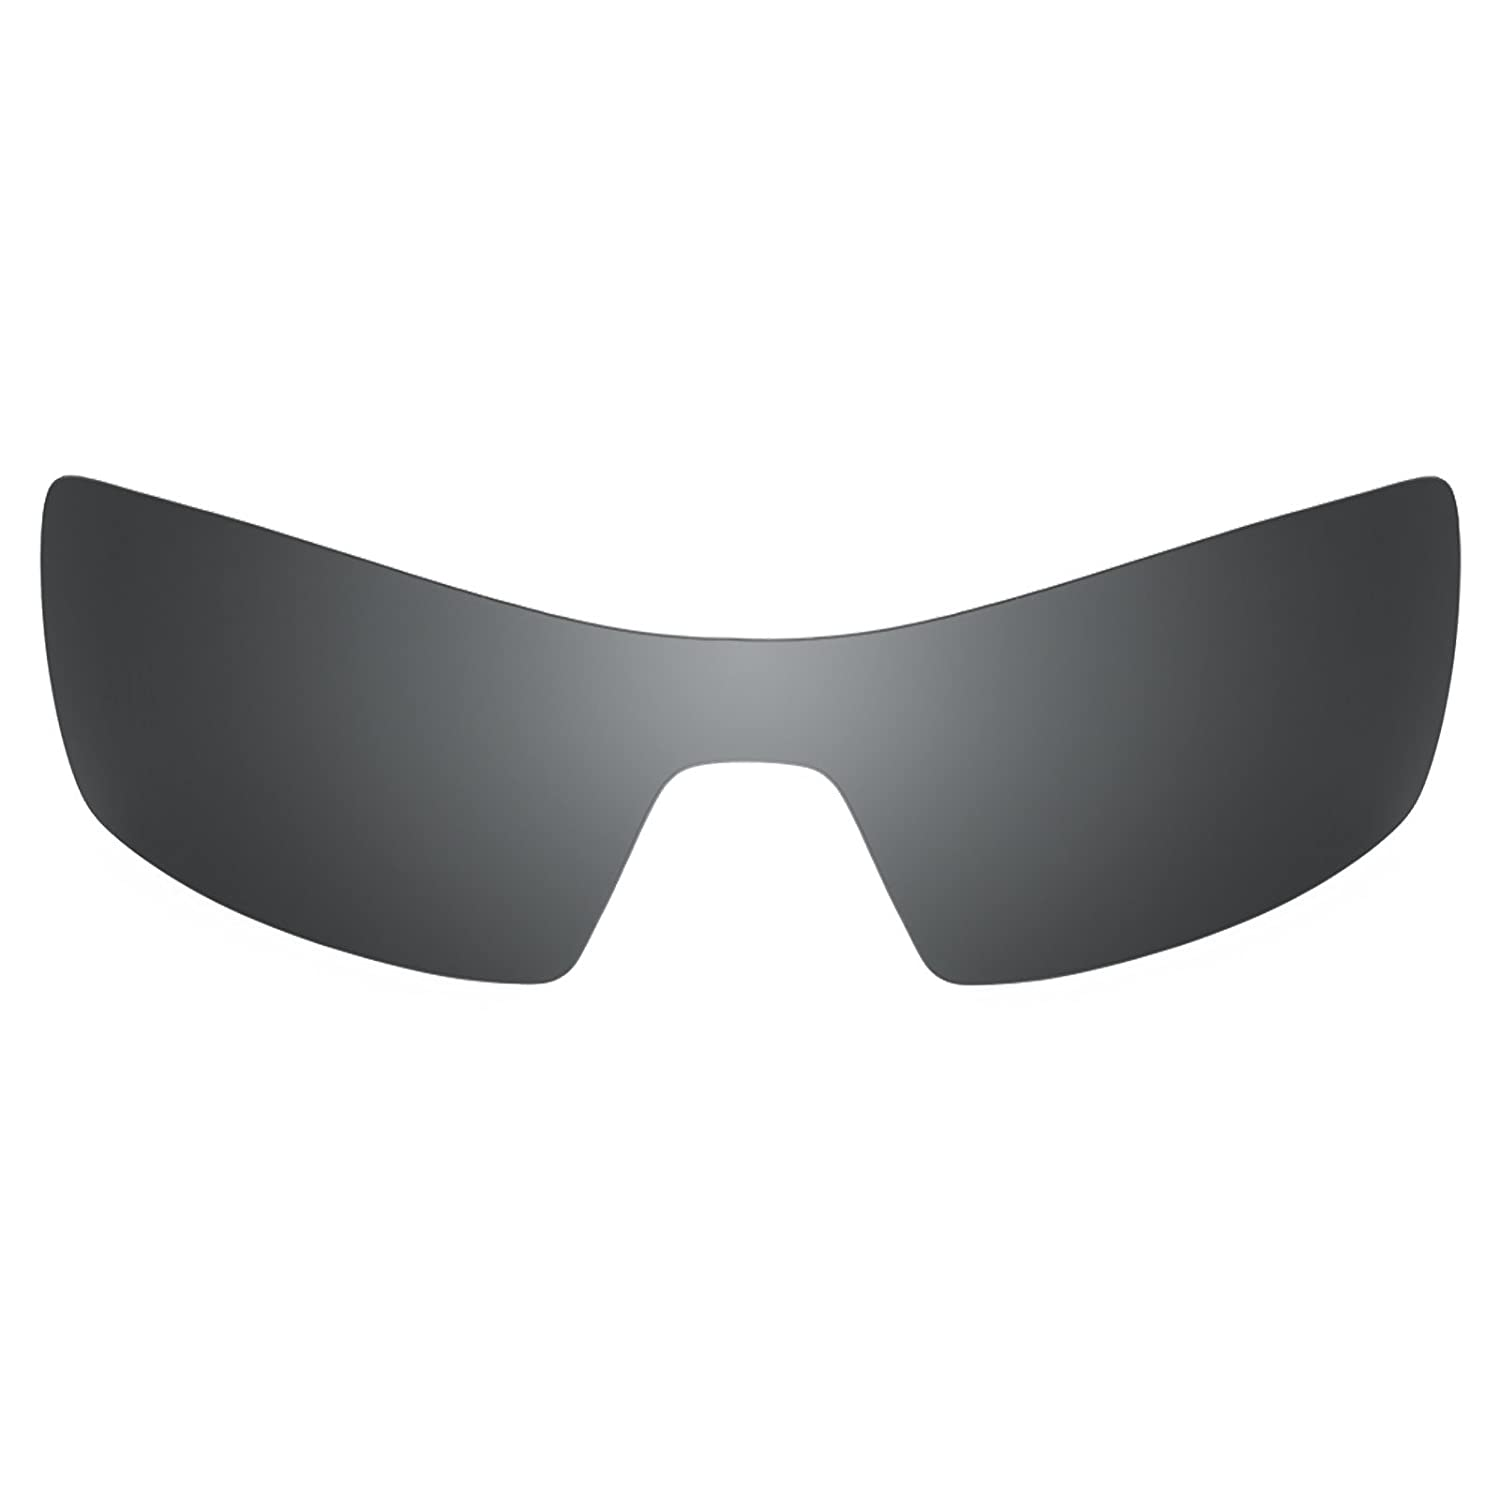 c6d2ec5f8a Revant Replacement Lens for Oakley Oil Rig Black Chrome MirrorShield®   Amazon.co.uk  Clothing